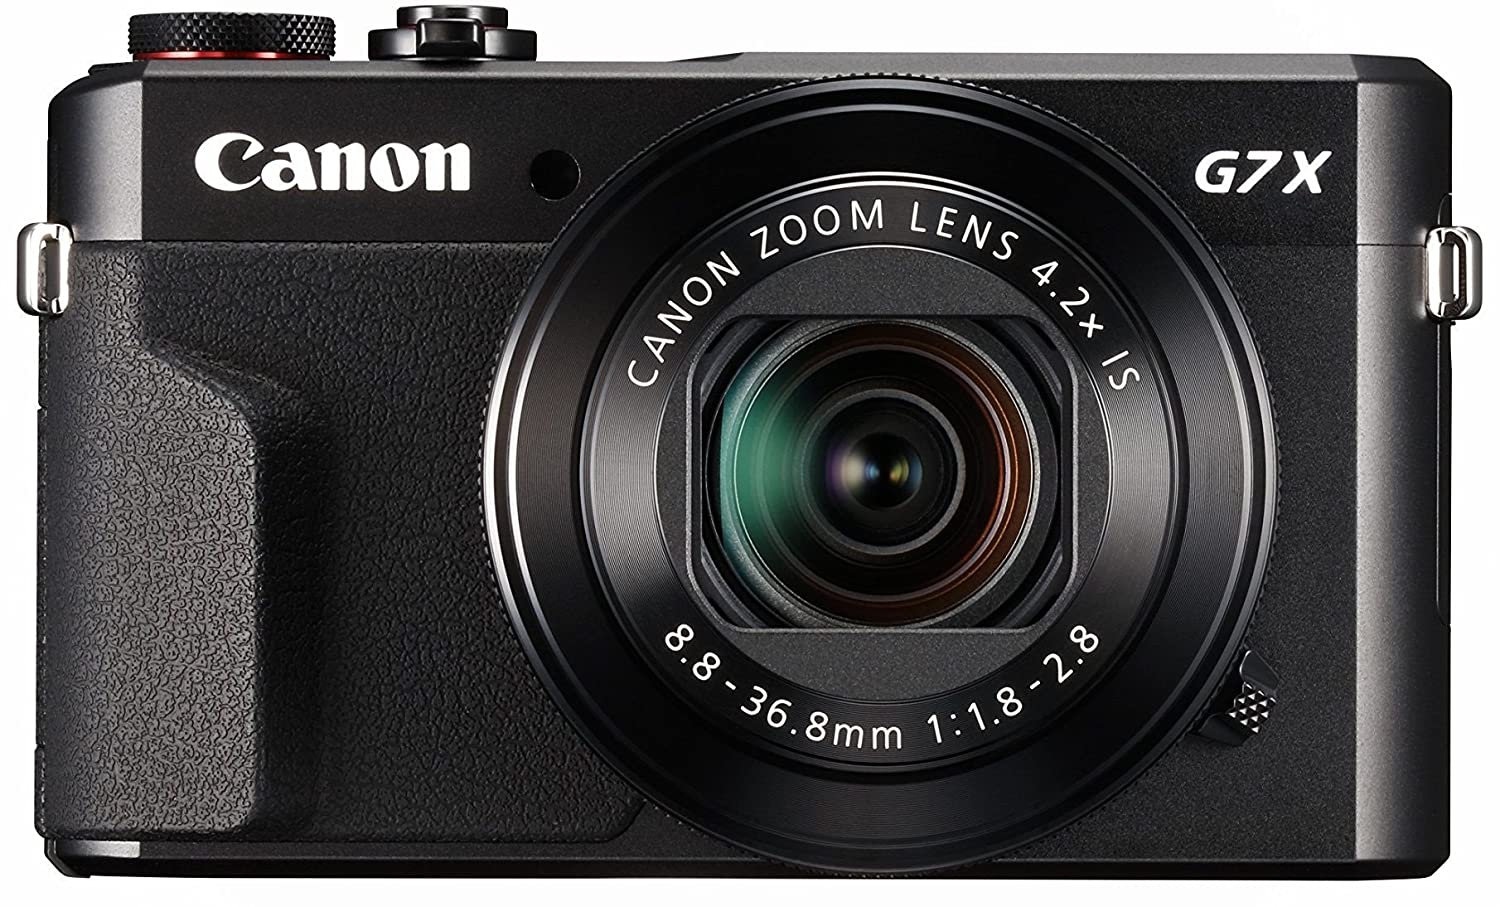 Canon PowerShot G7 X Mark II Review